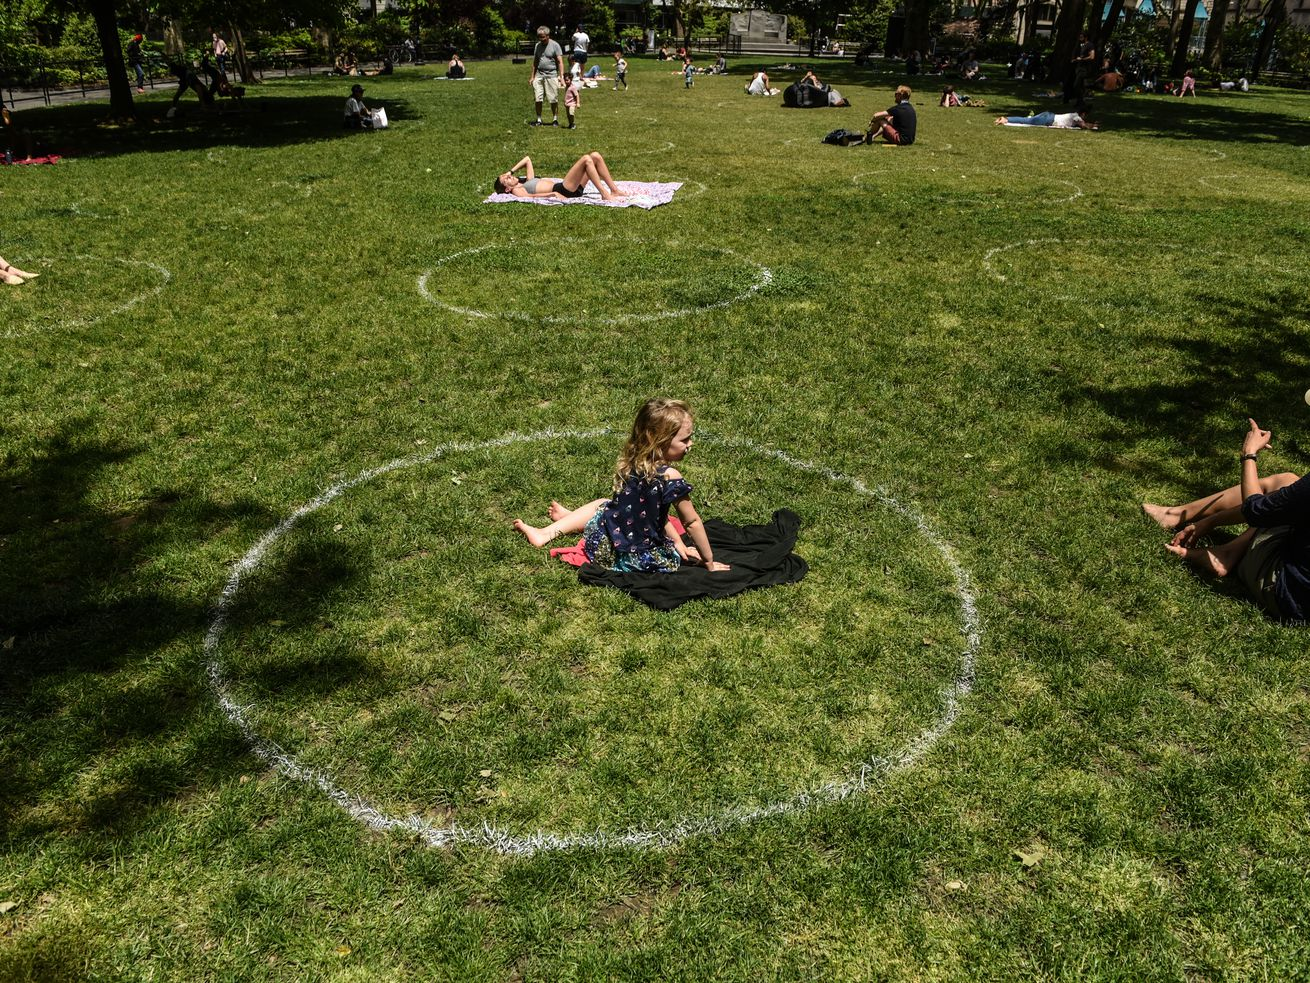 A young girl sits inside a social distancing circle at a New York City park on May 22, 2020, during the Covid-19 pandemic.